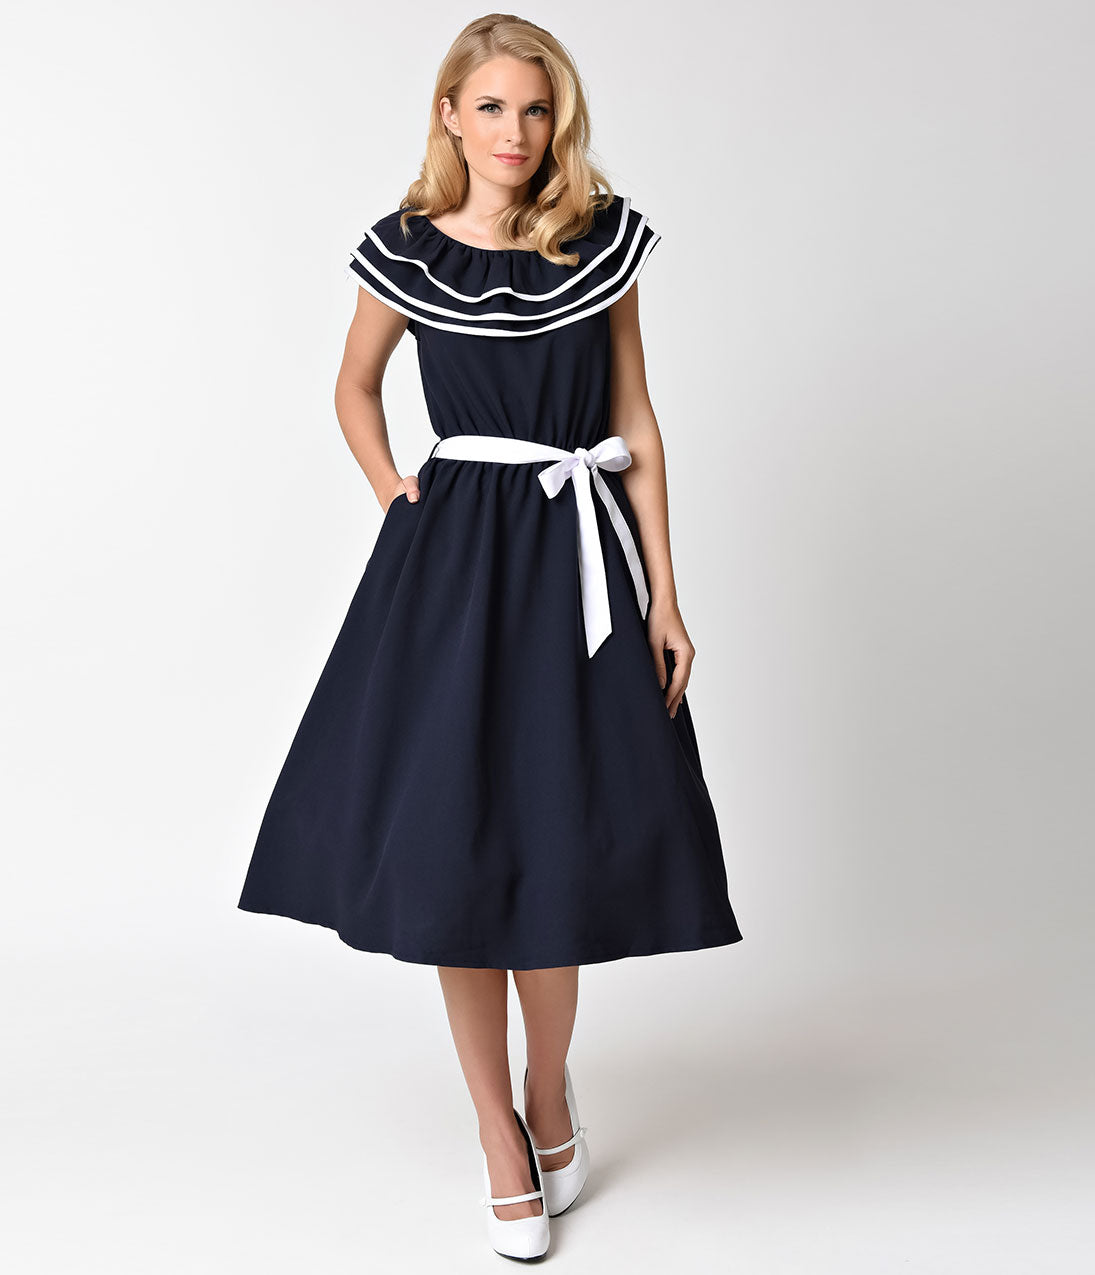 1950s Dresses, 50s Dresses | 1950s Style Dresses Voodoo Vixen Navy Blue Nautical Ruffle Hope Swing Dress $46.00 AT vintagedancer.com